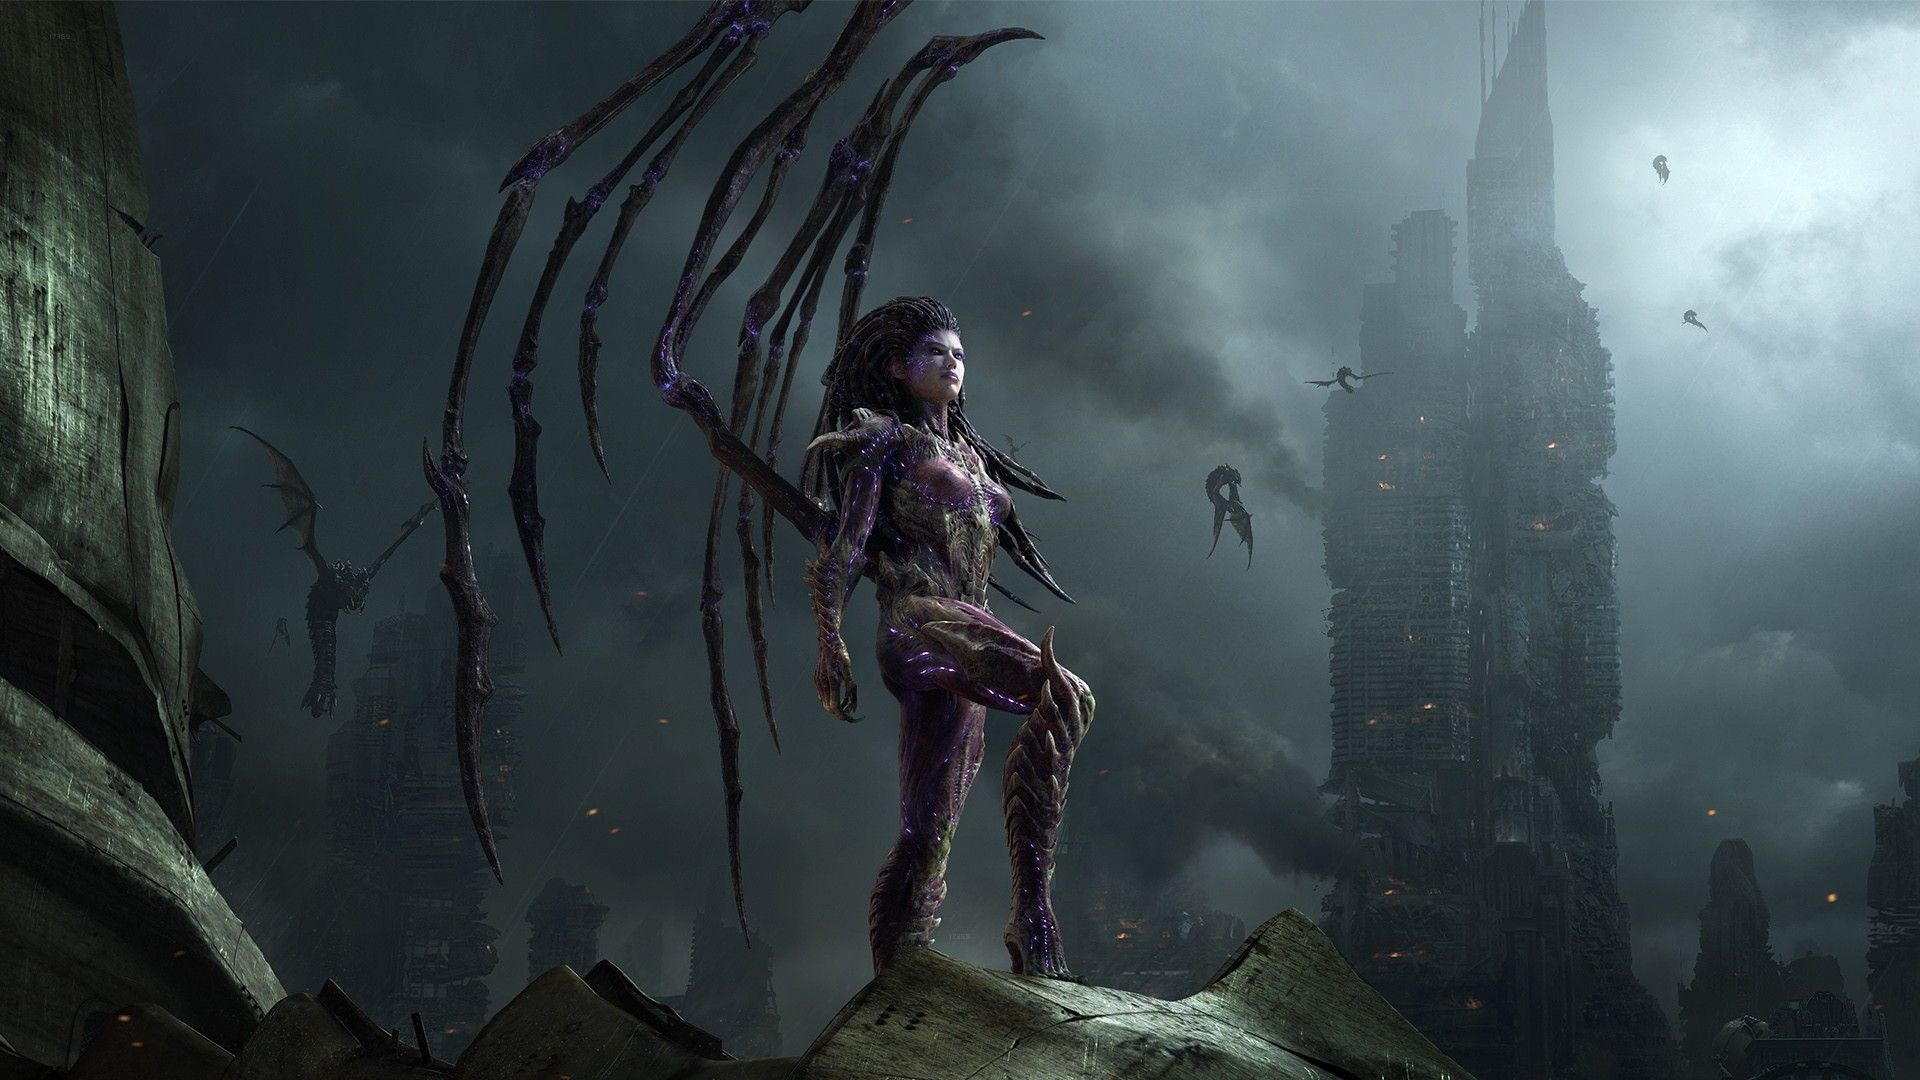 sci-fi fantasy babes |  post apocalyptic buildings cities women